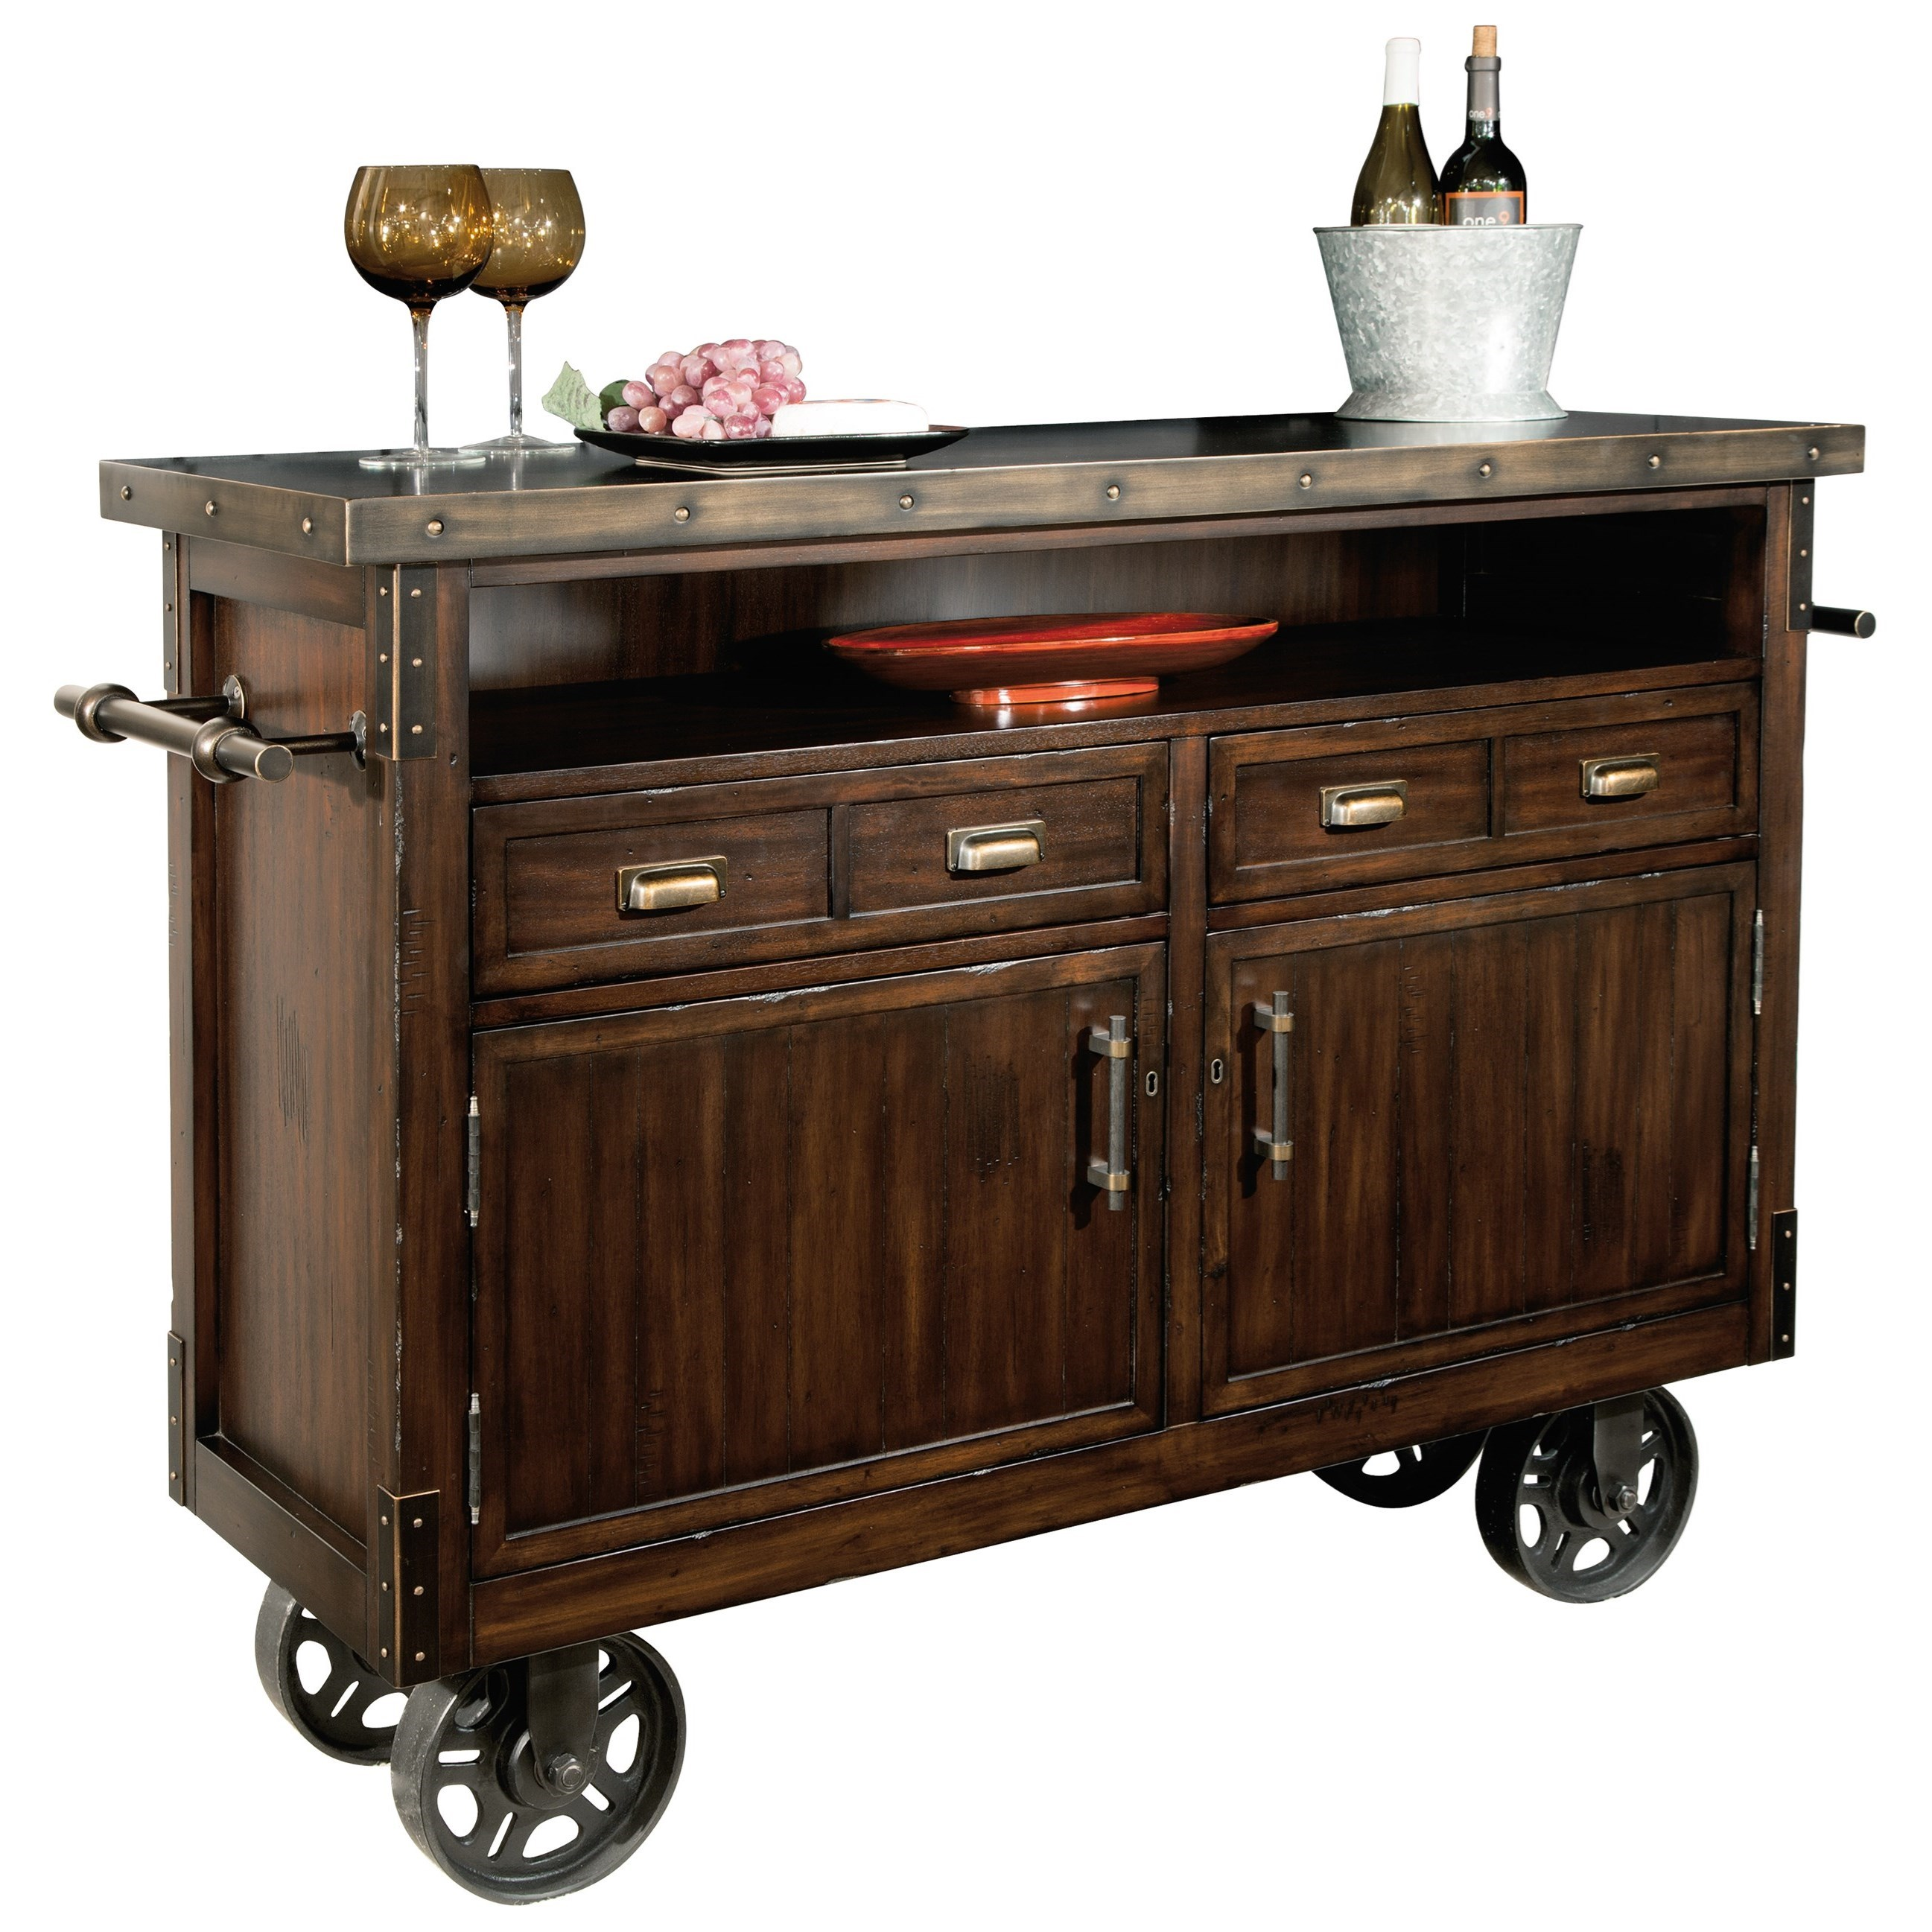 Wine & Bar Furnishings Barrow's Wine and Bar Console by Howard Miller at Alison Craig Home Furnishings